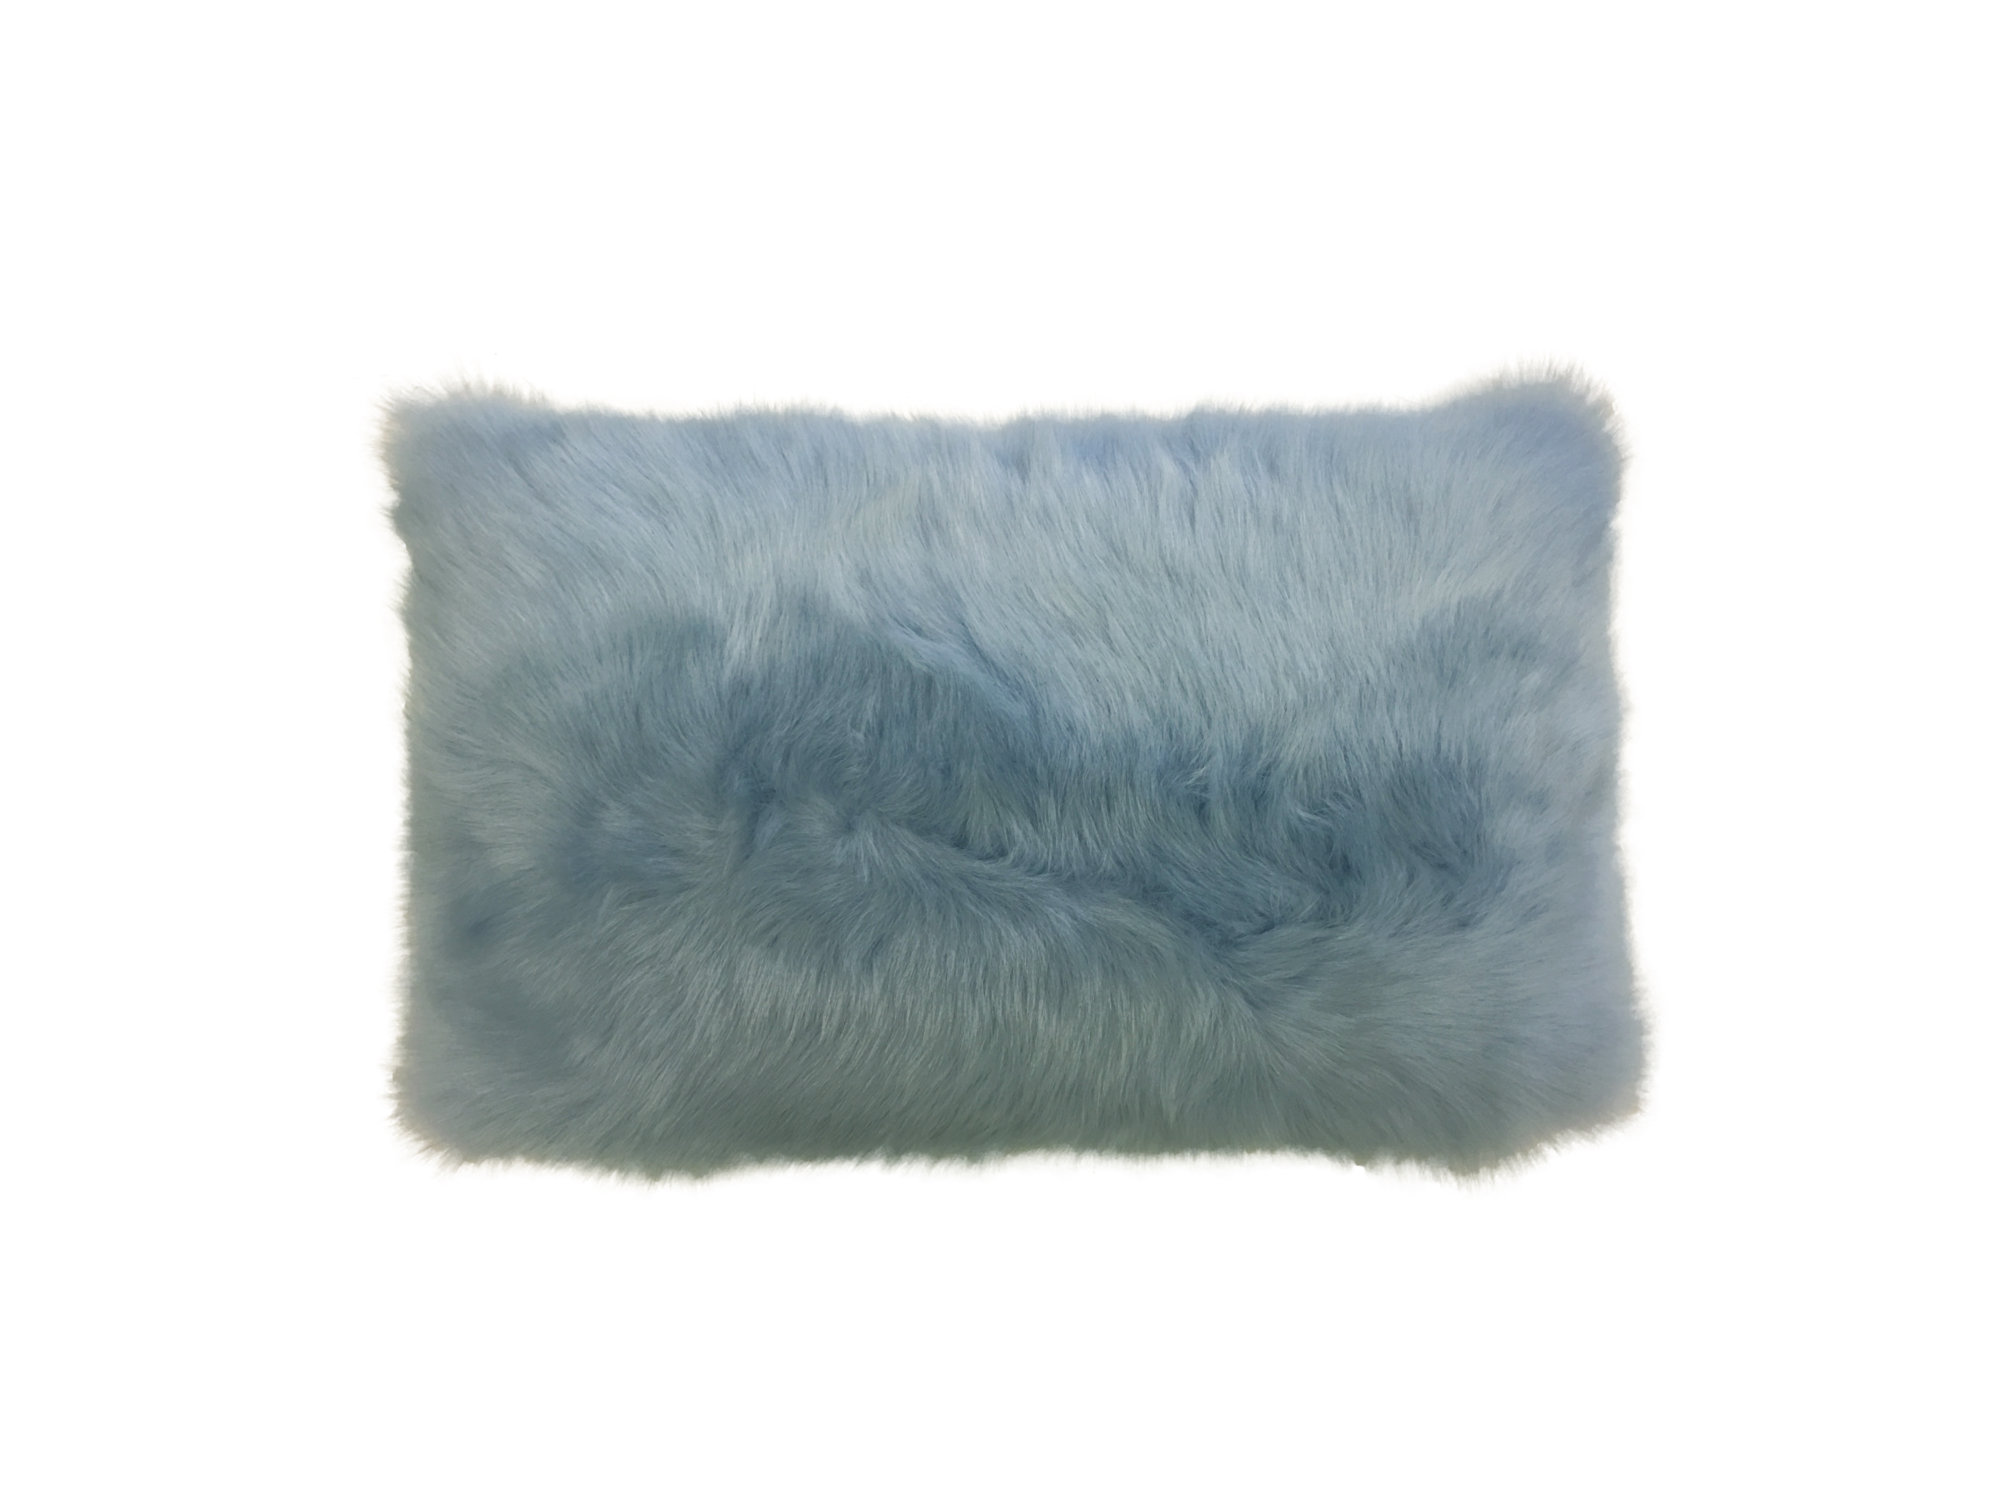 Shearling Pillow-Ciello-30x40cm-SPCIES3143050 - ANVOGG FEEL SHEARLING | ANVOGG